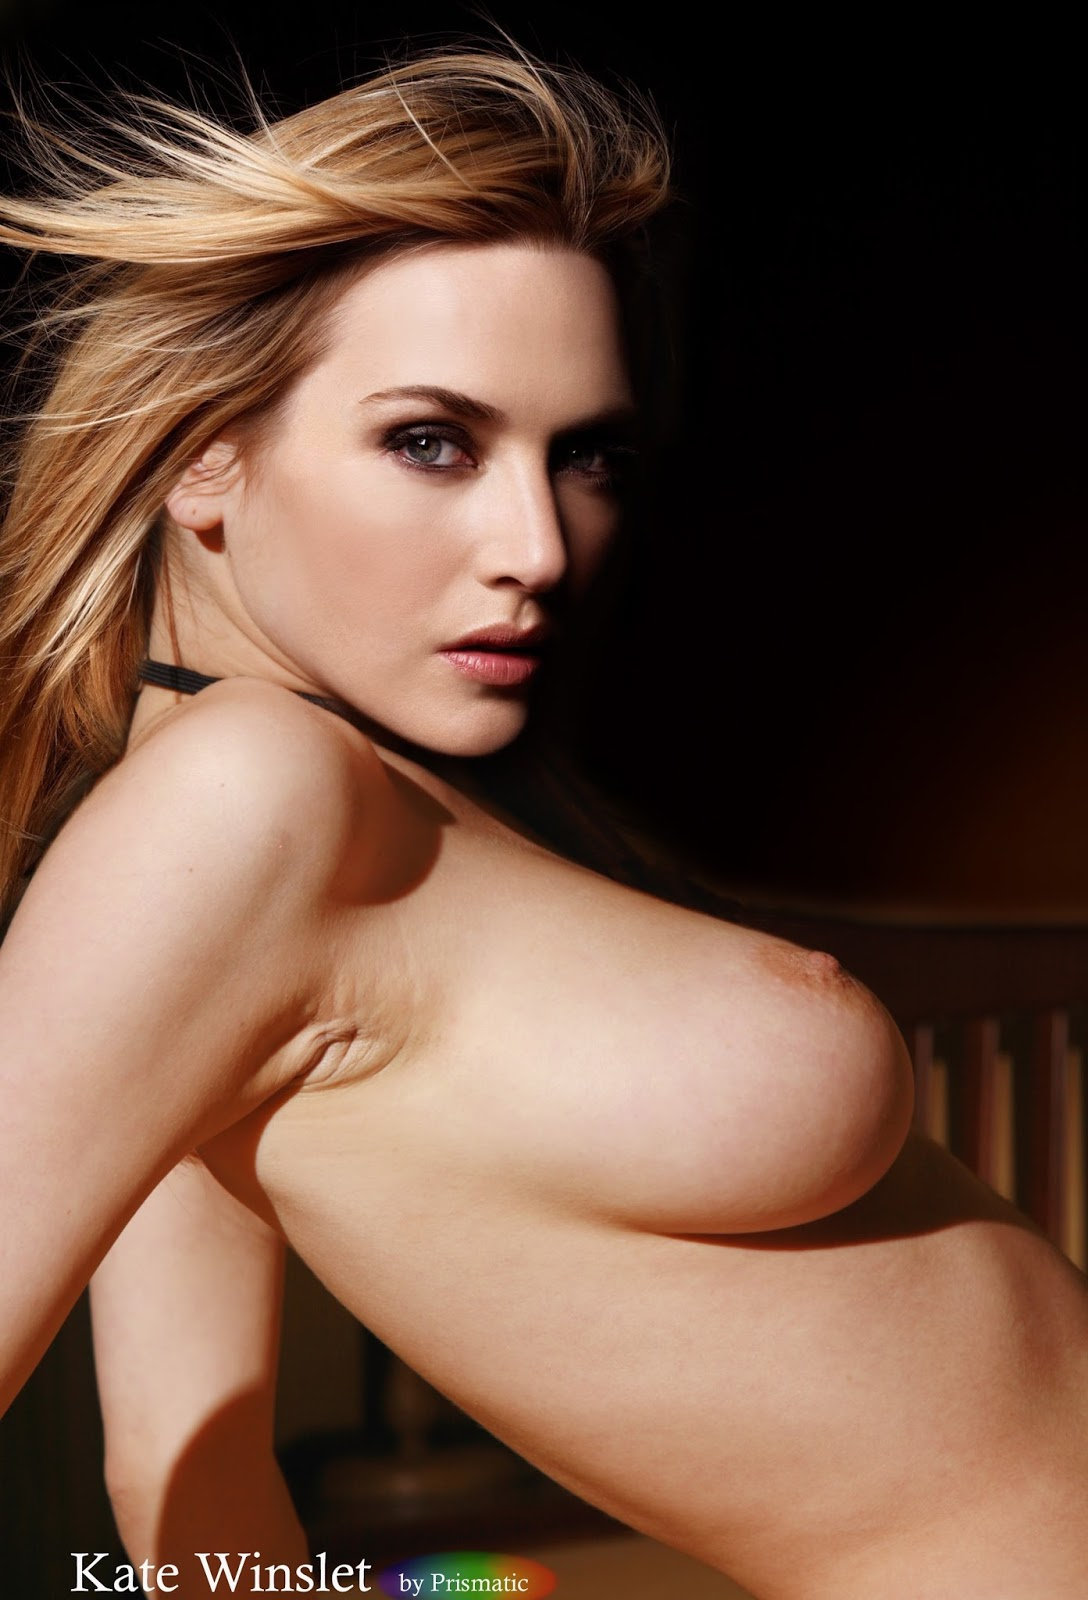 Breast Of Kate Winslet